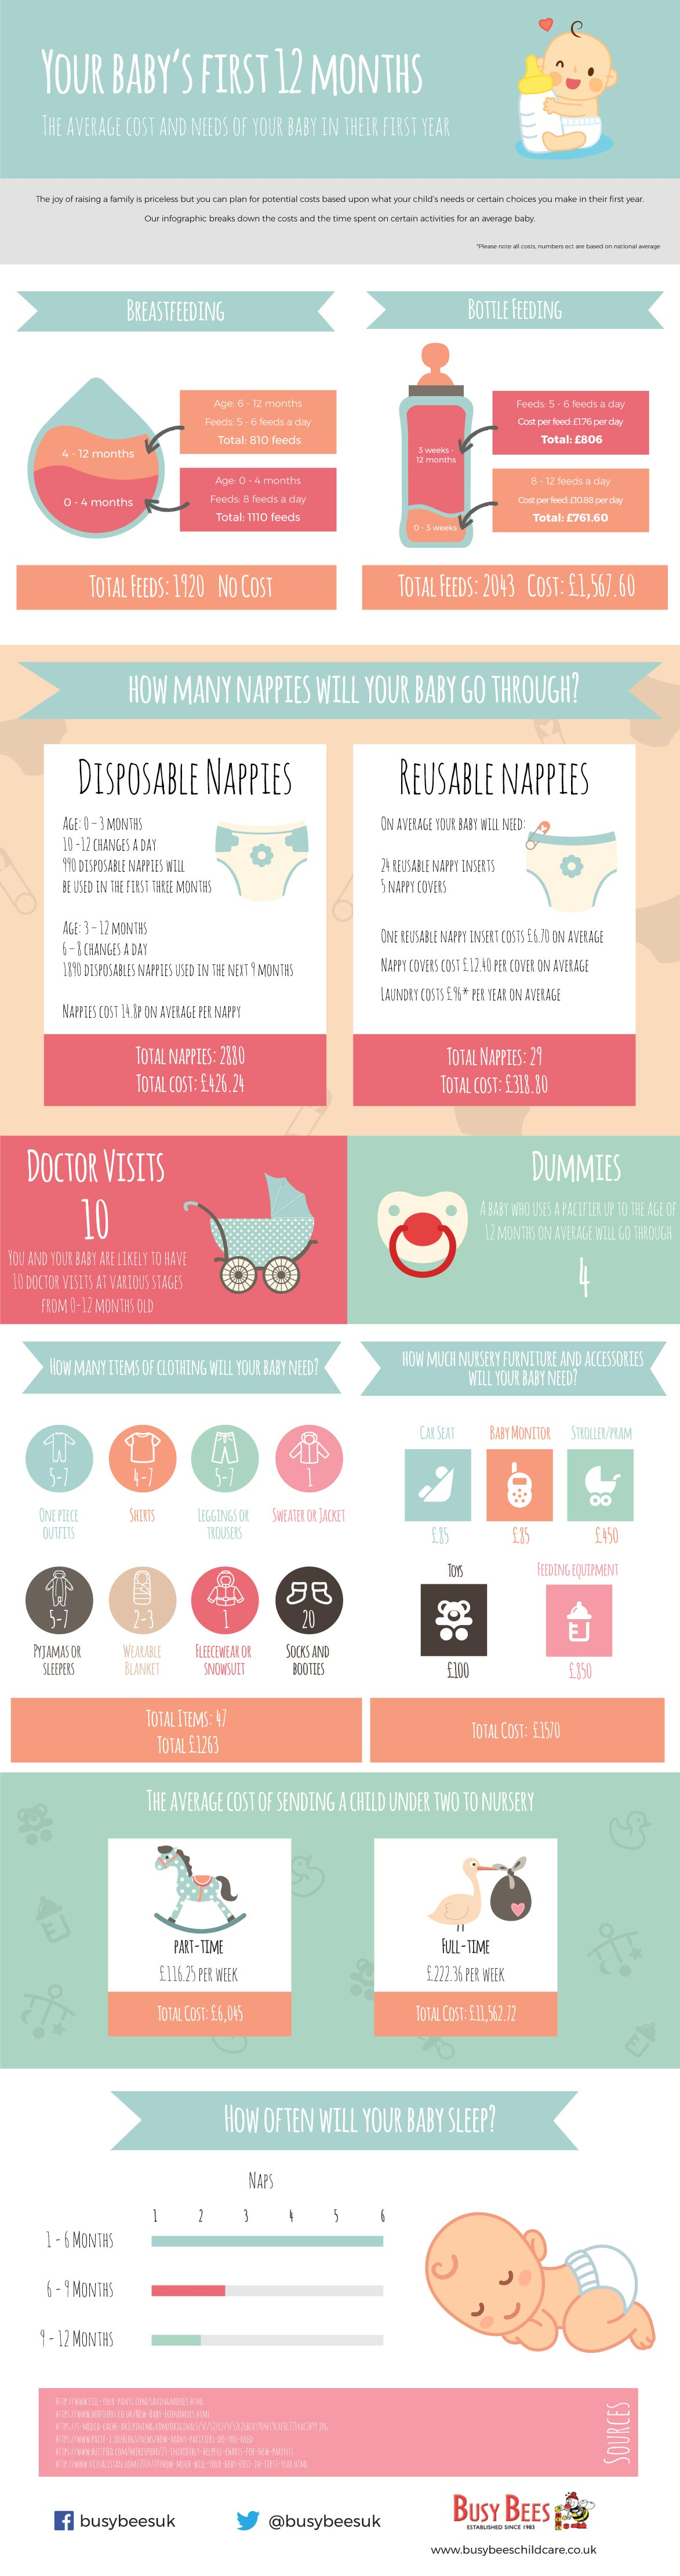 What's the average cost of having a baby?